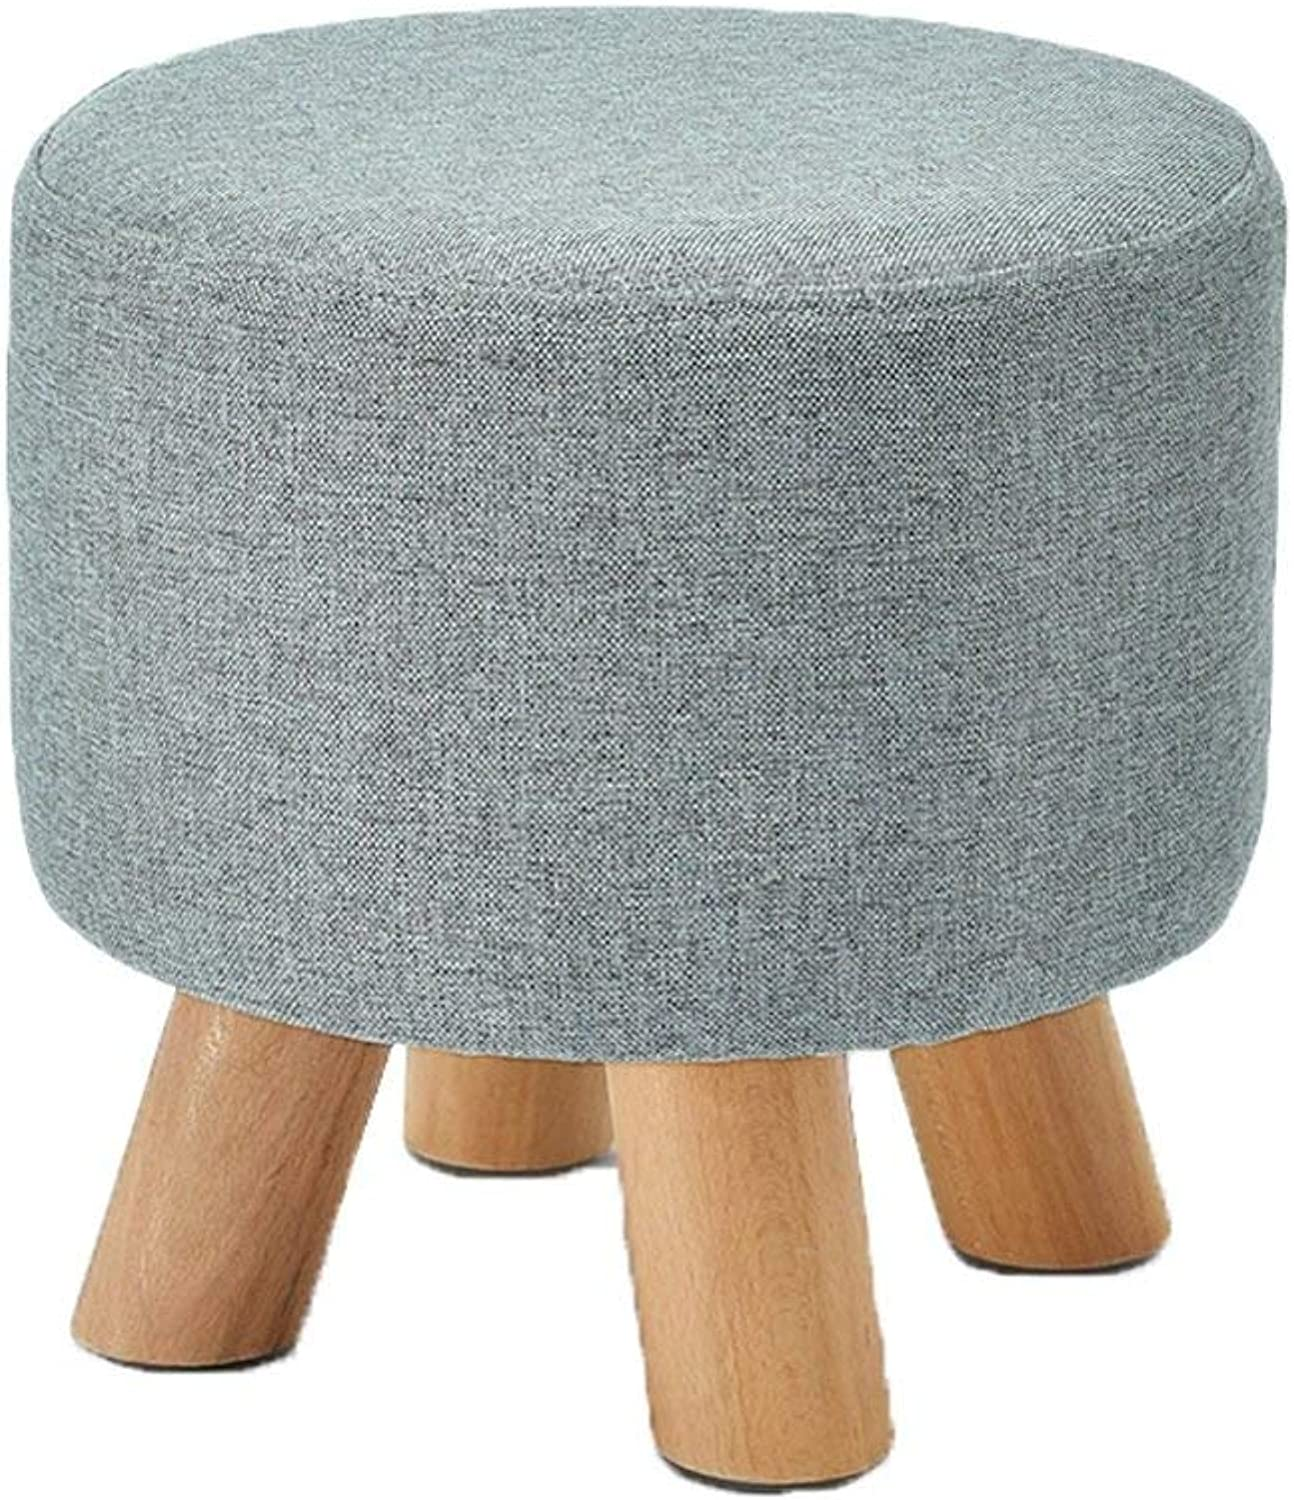 Ronggoutrade Fabric Solid Wood Stool, Fashion Sofa Stool, Home Stool, Adult Stool, shoes Bench - Small Stool (color   E)